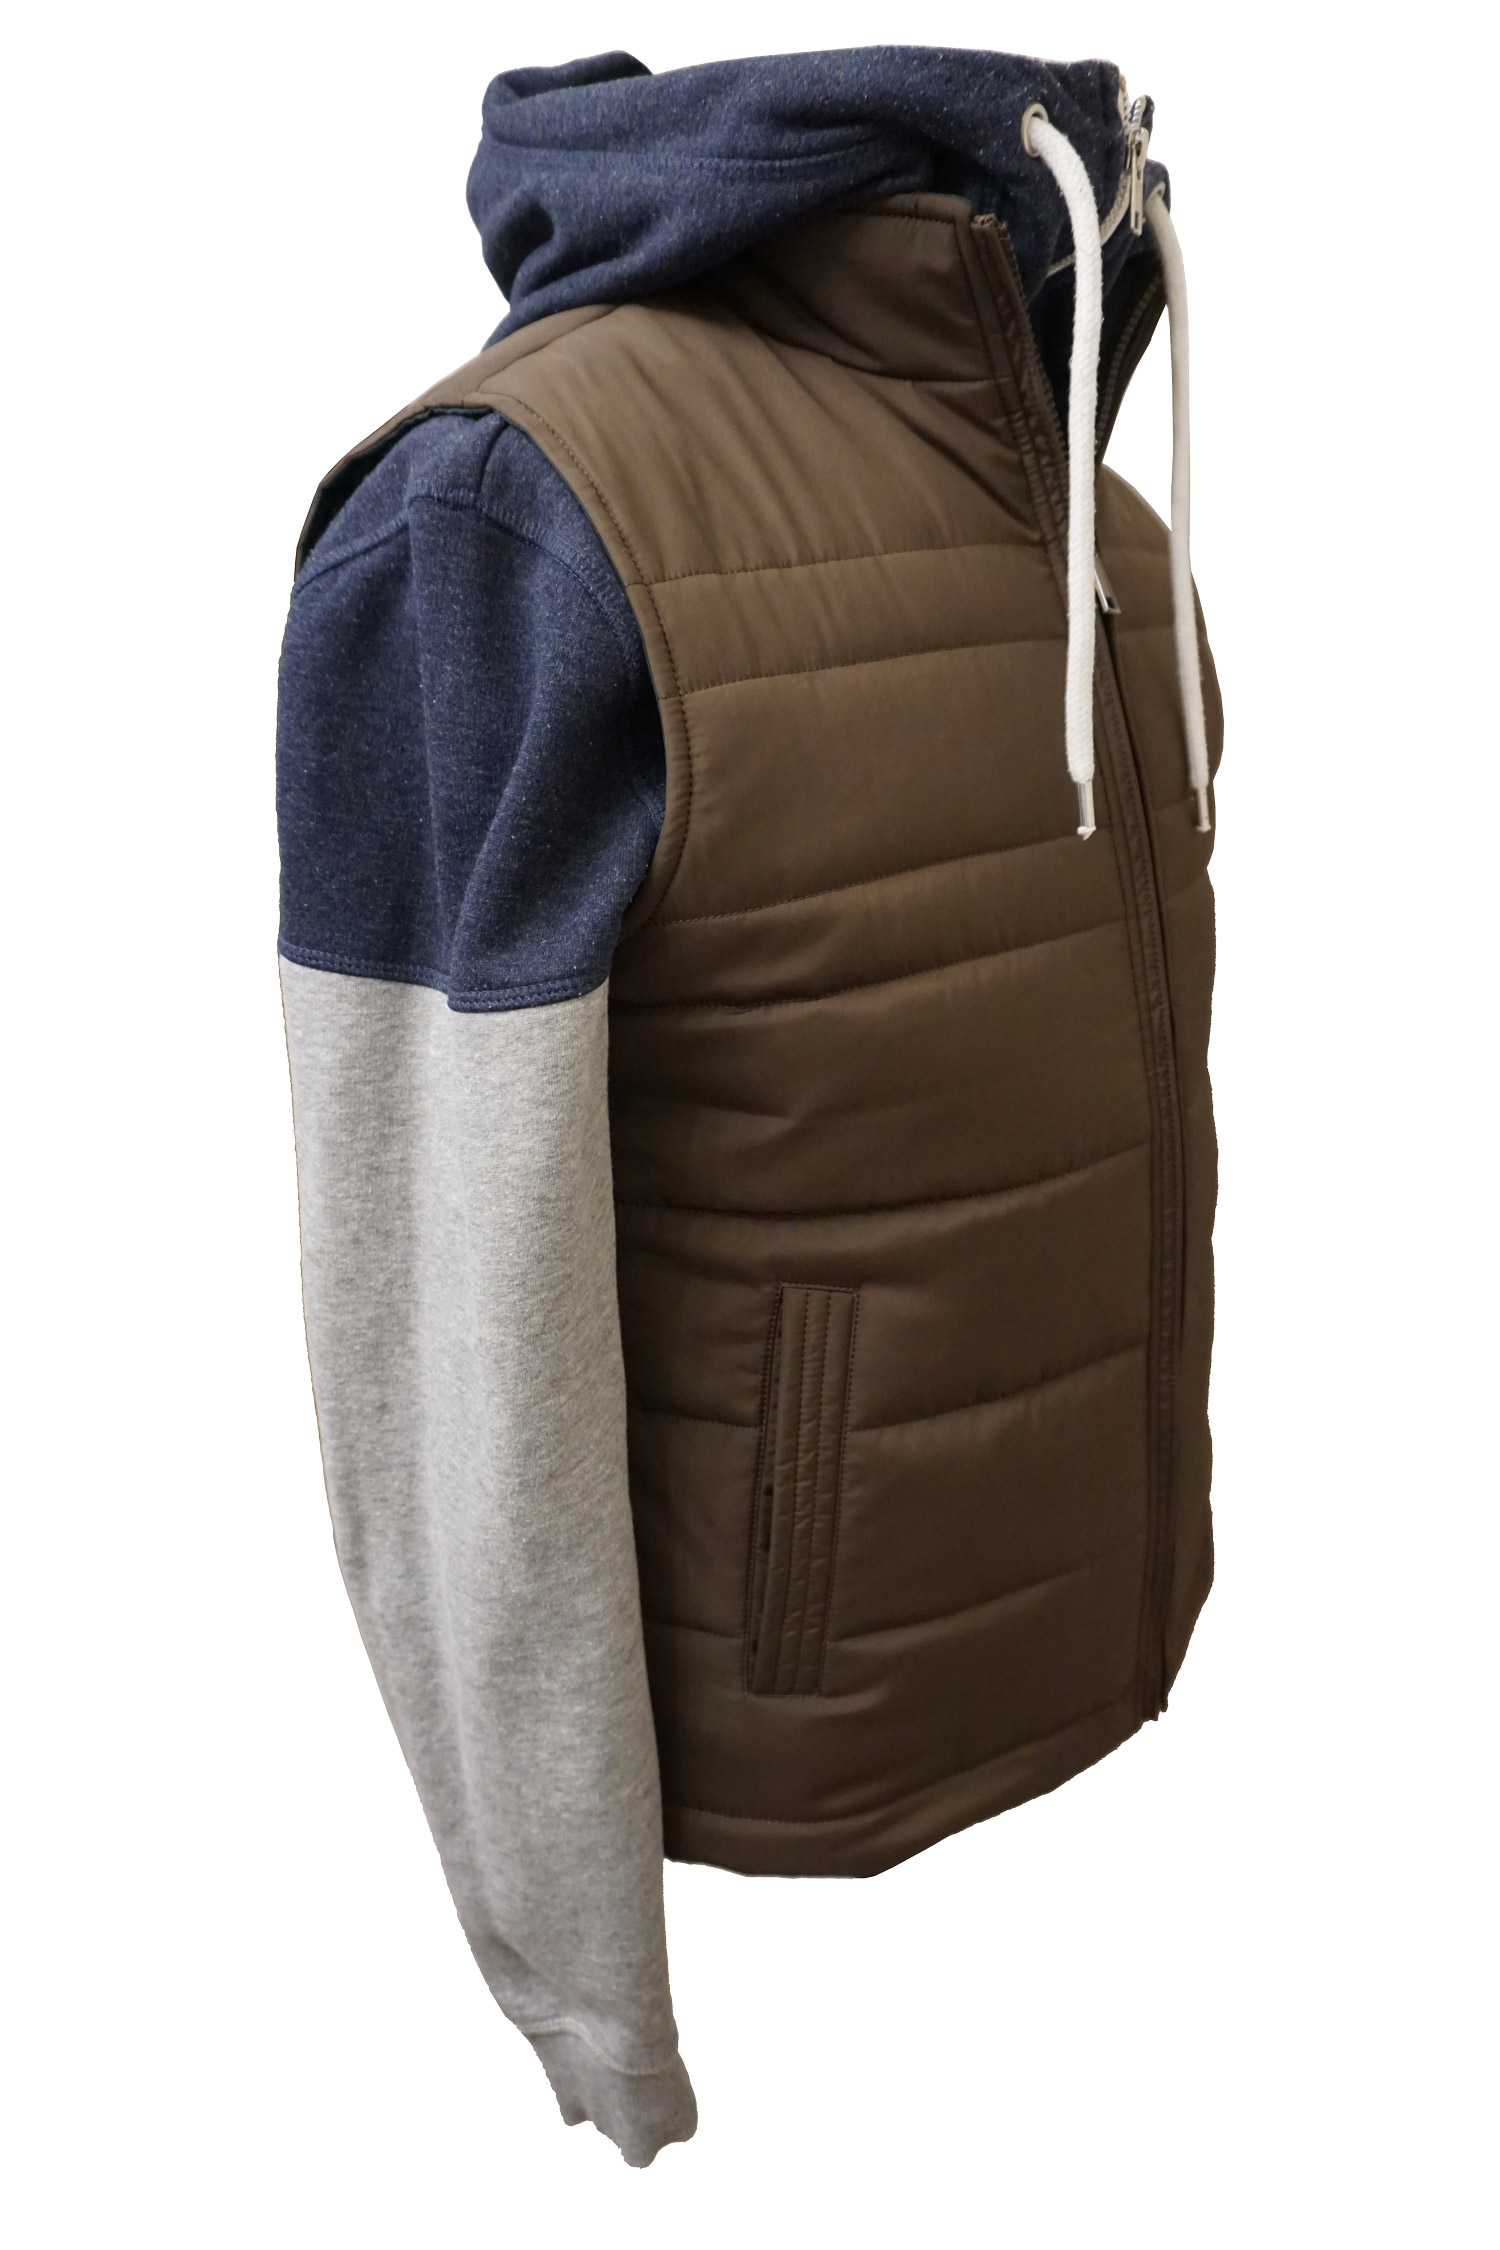 Brown-Vest-Sample-1.jpg